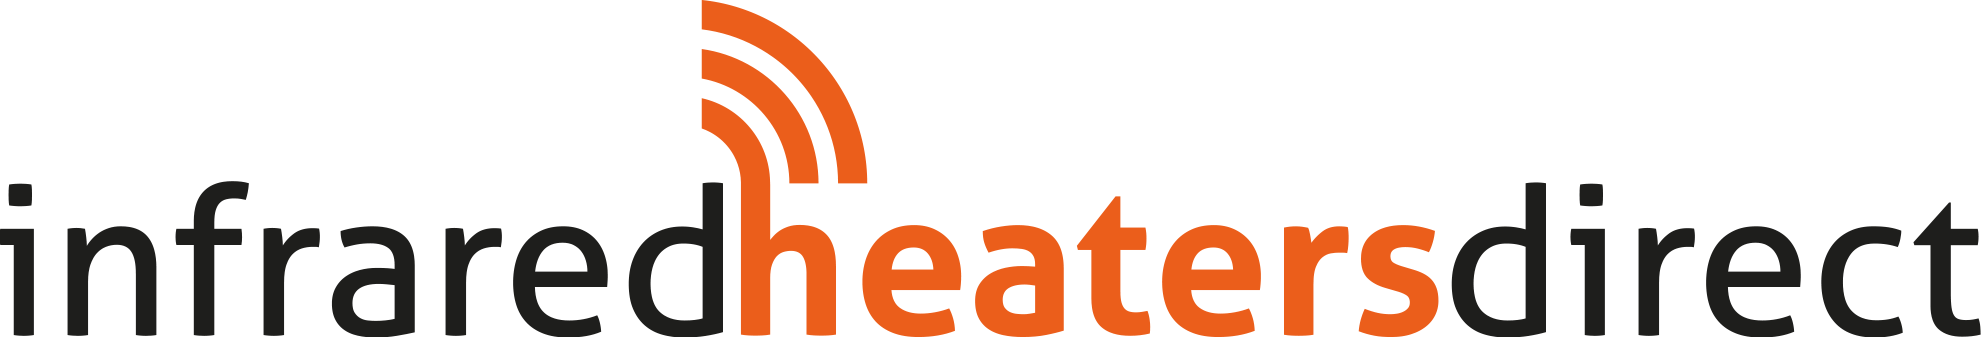 Infrared Heaters Direct